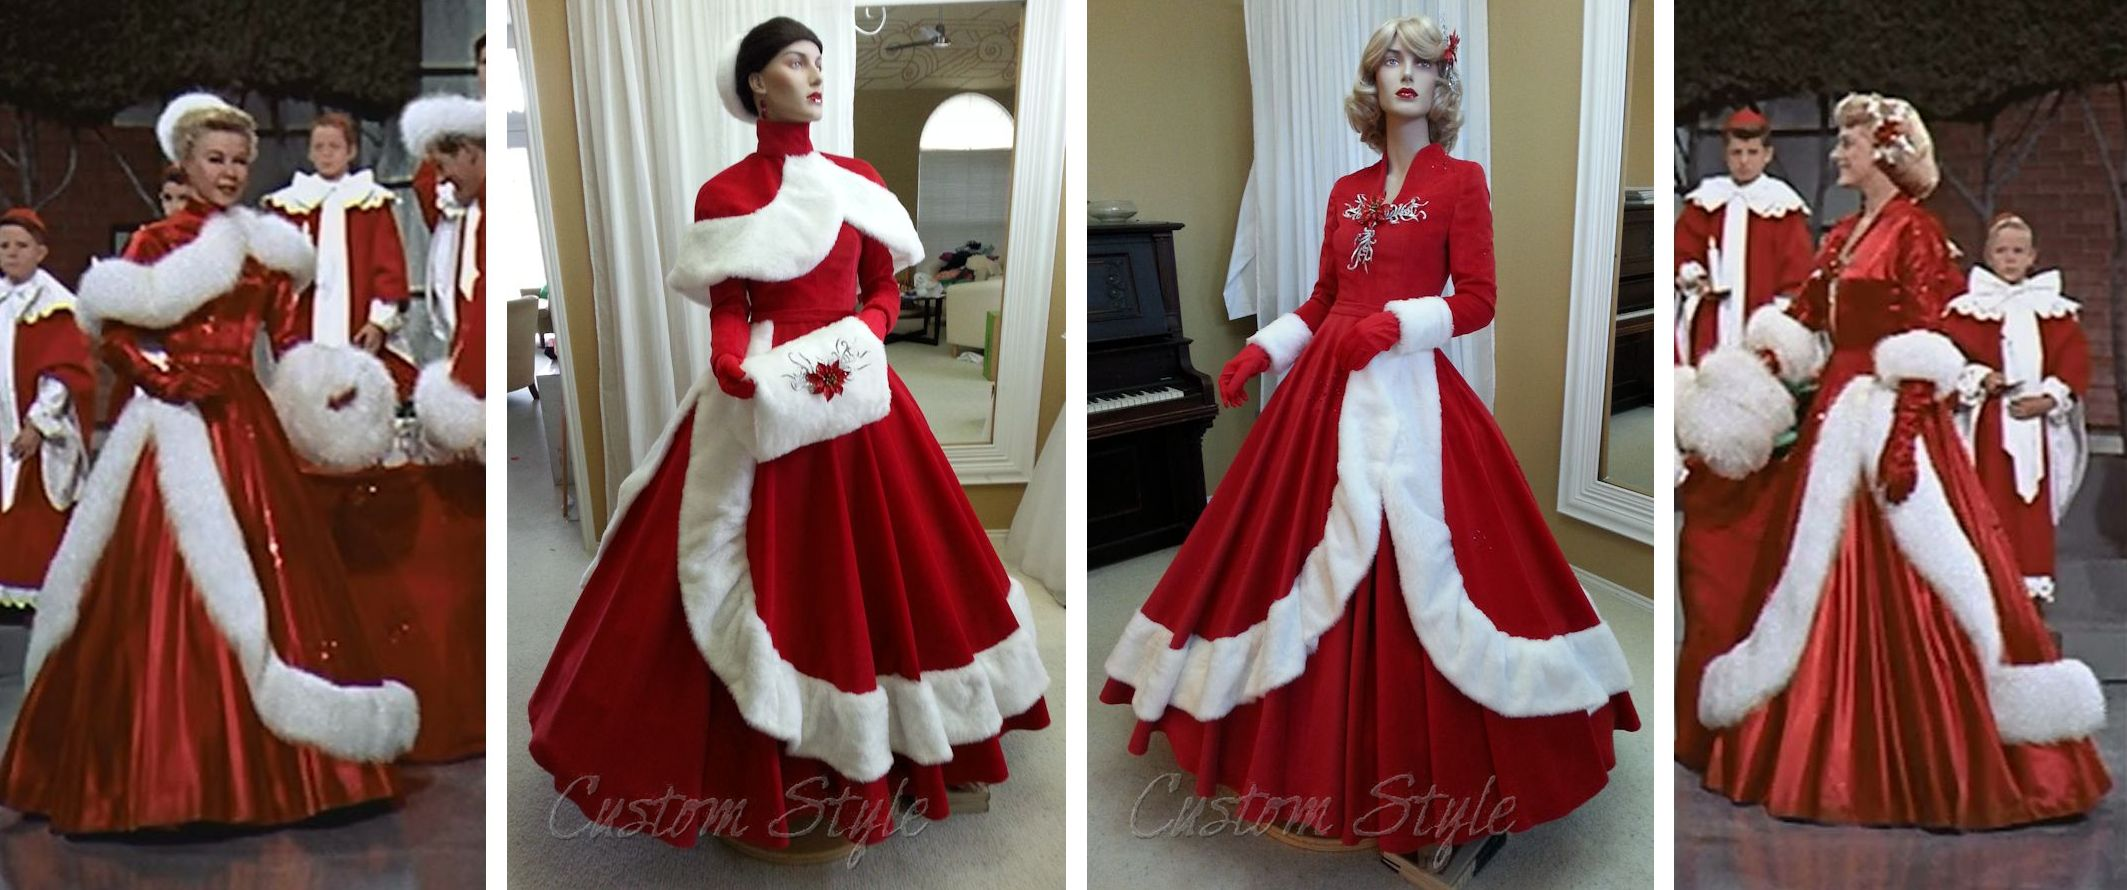 White Christmas Dresses for The Fantasy of Lights | Custom Style